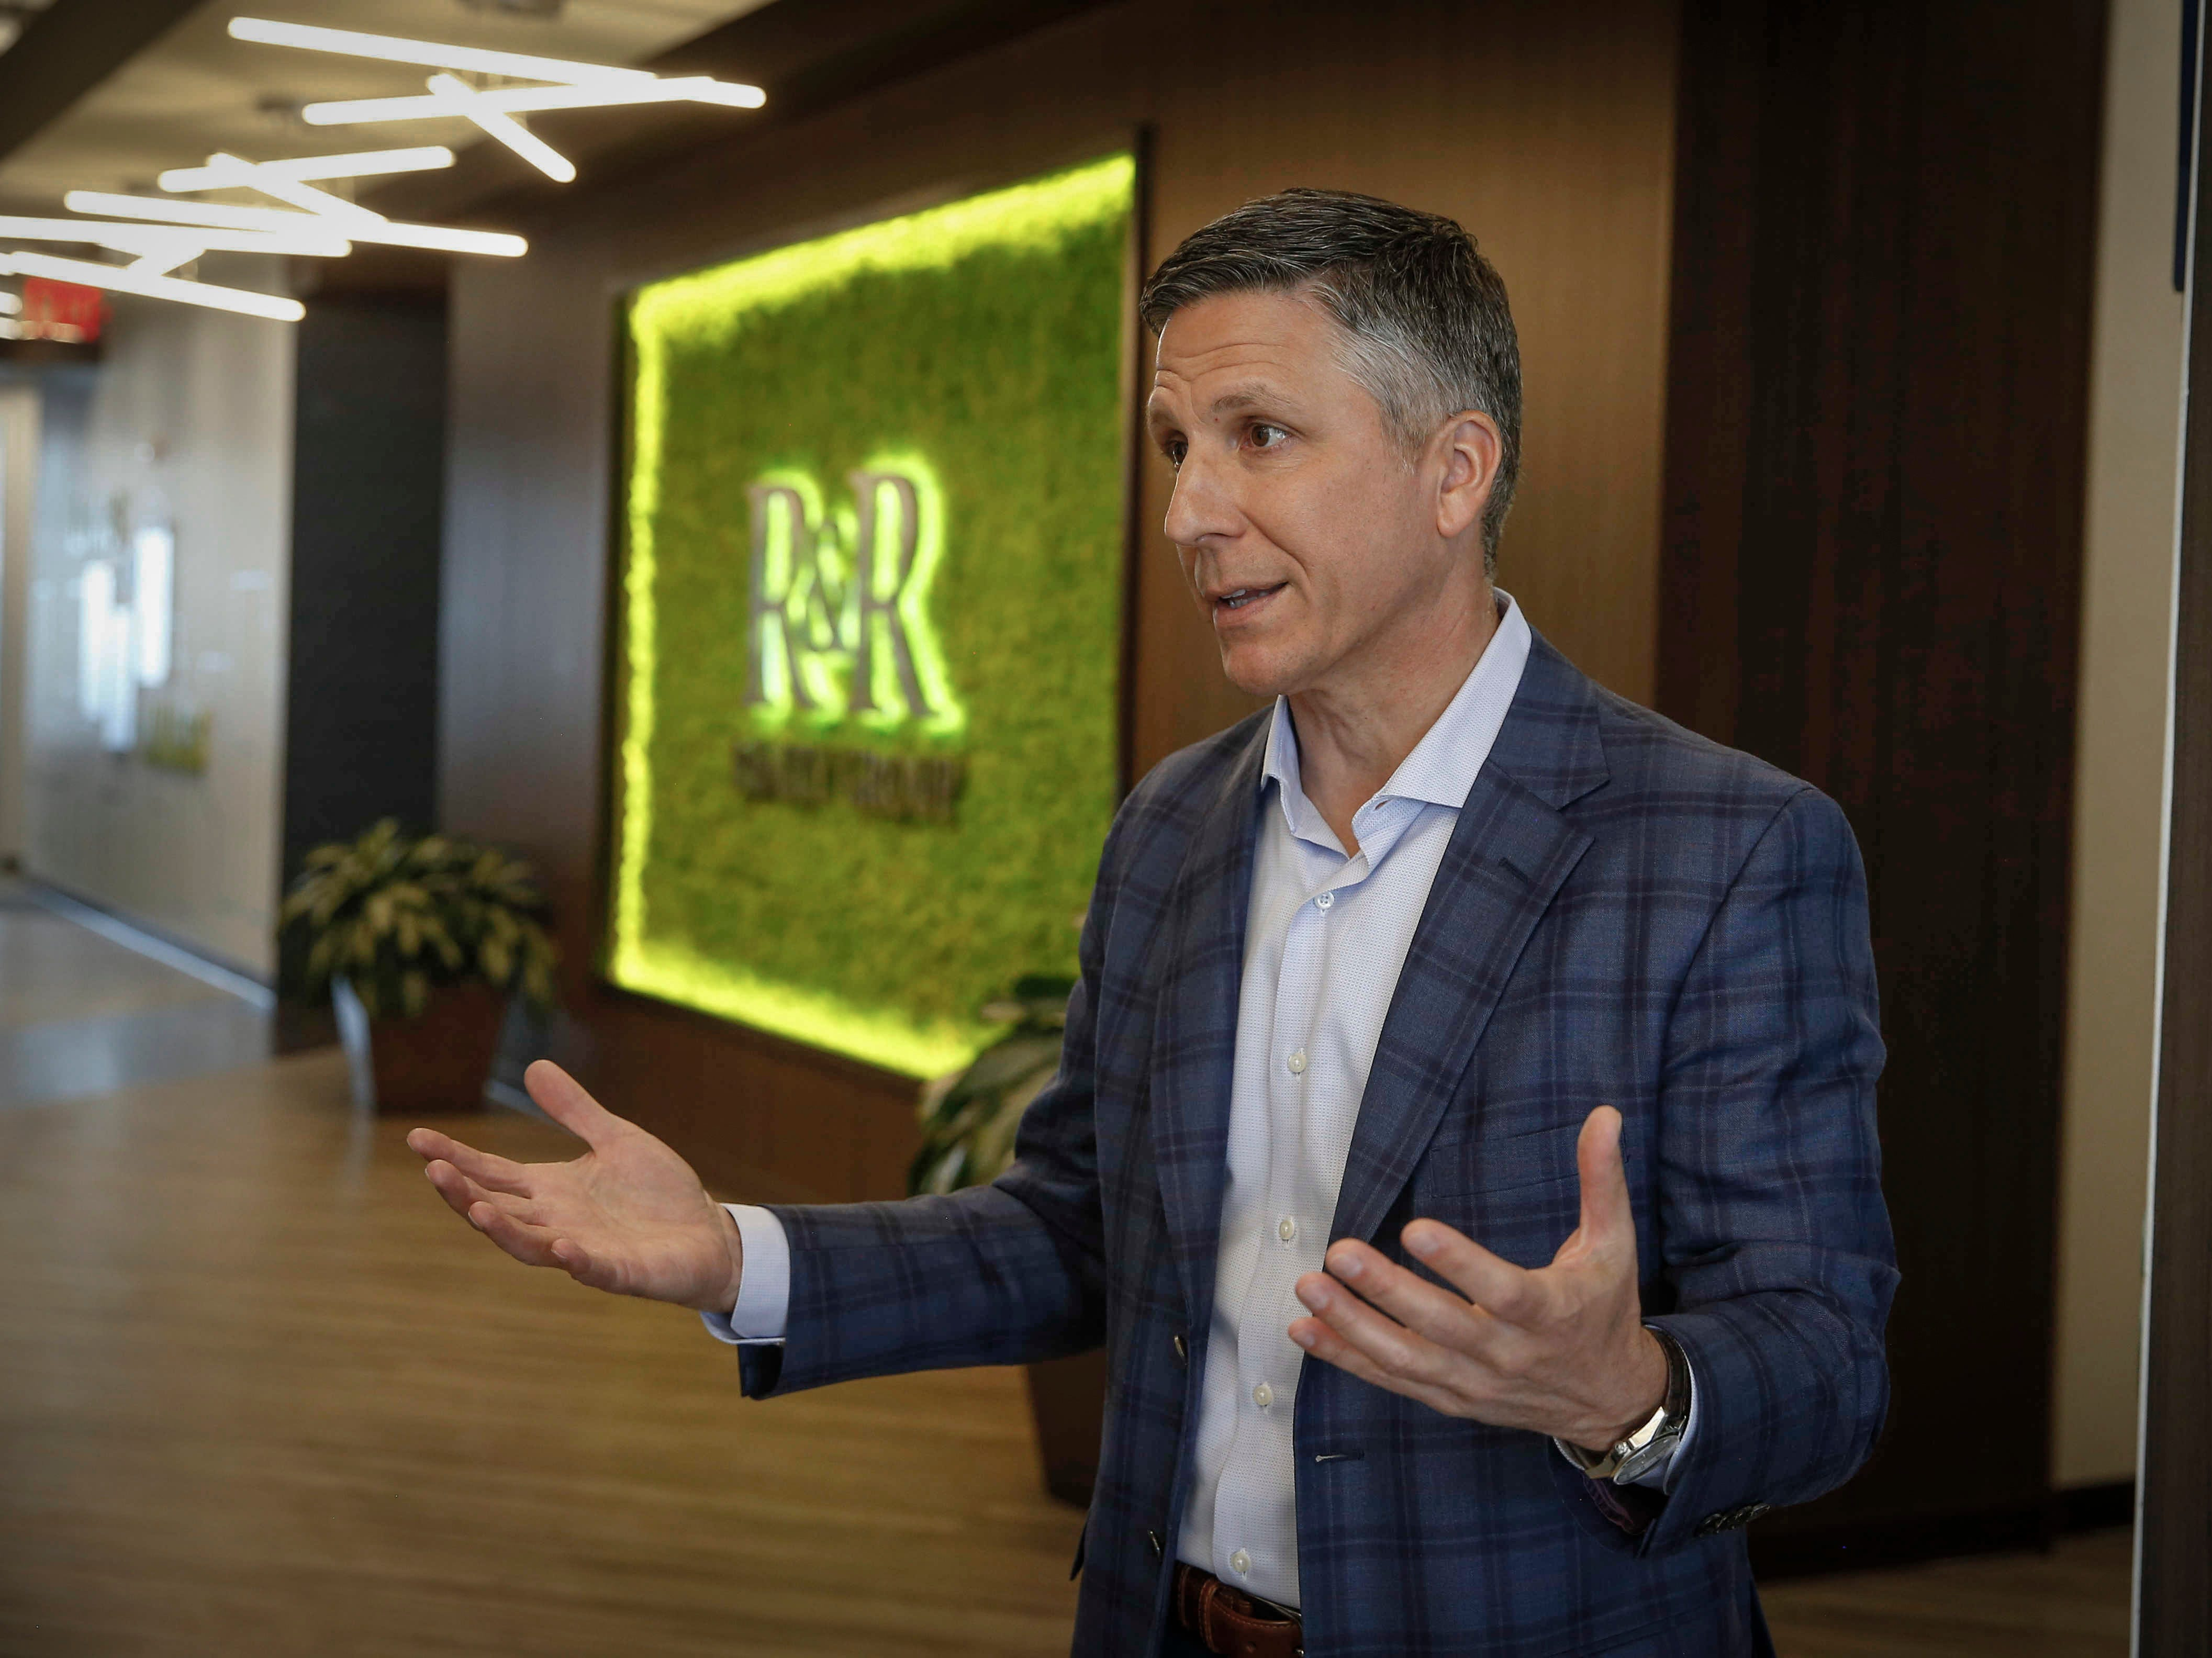 Mark Rupprecht, president of R&R Realty Group, talks about the amenities at the new Westfield office building in West Des Moines on Thursday, Feb. 7, 2019.